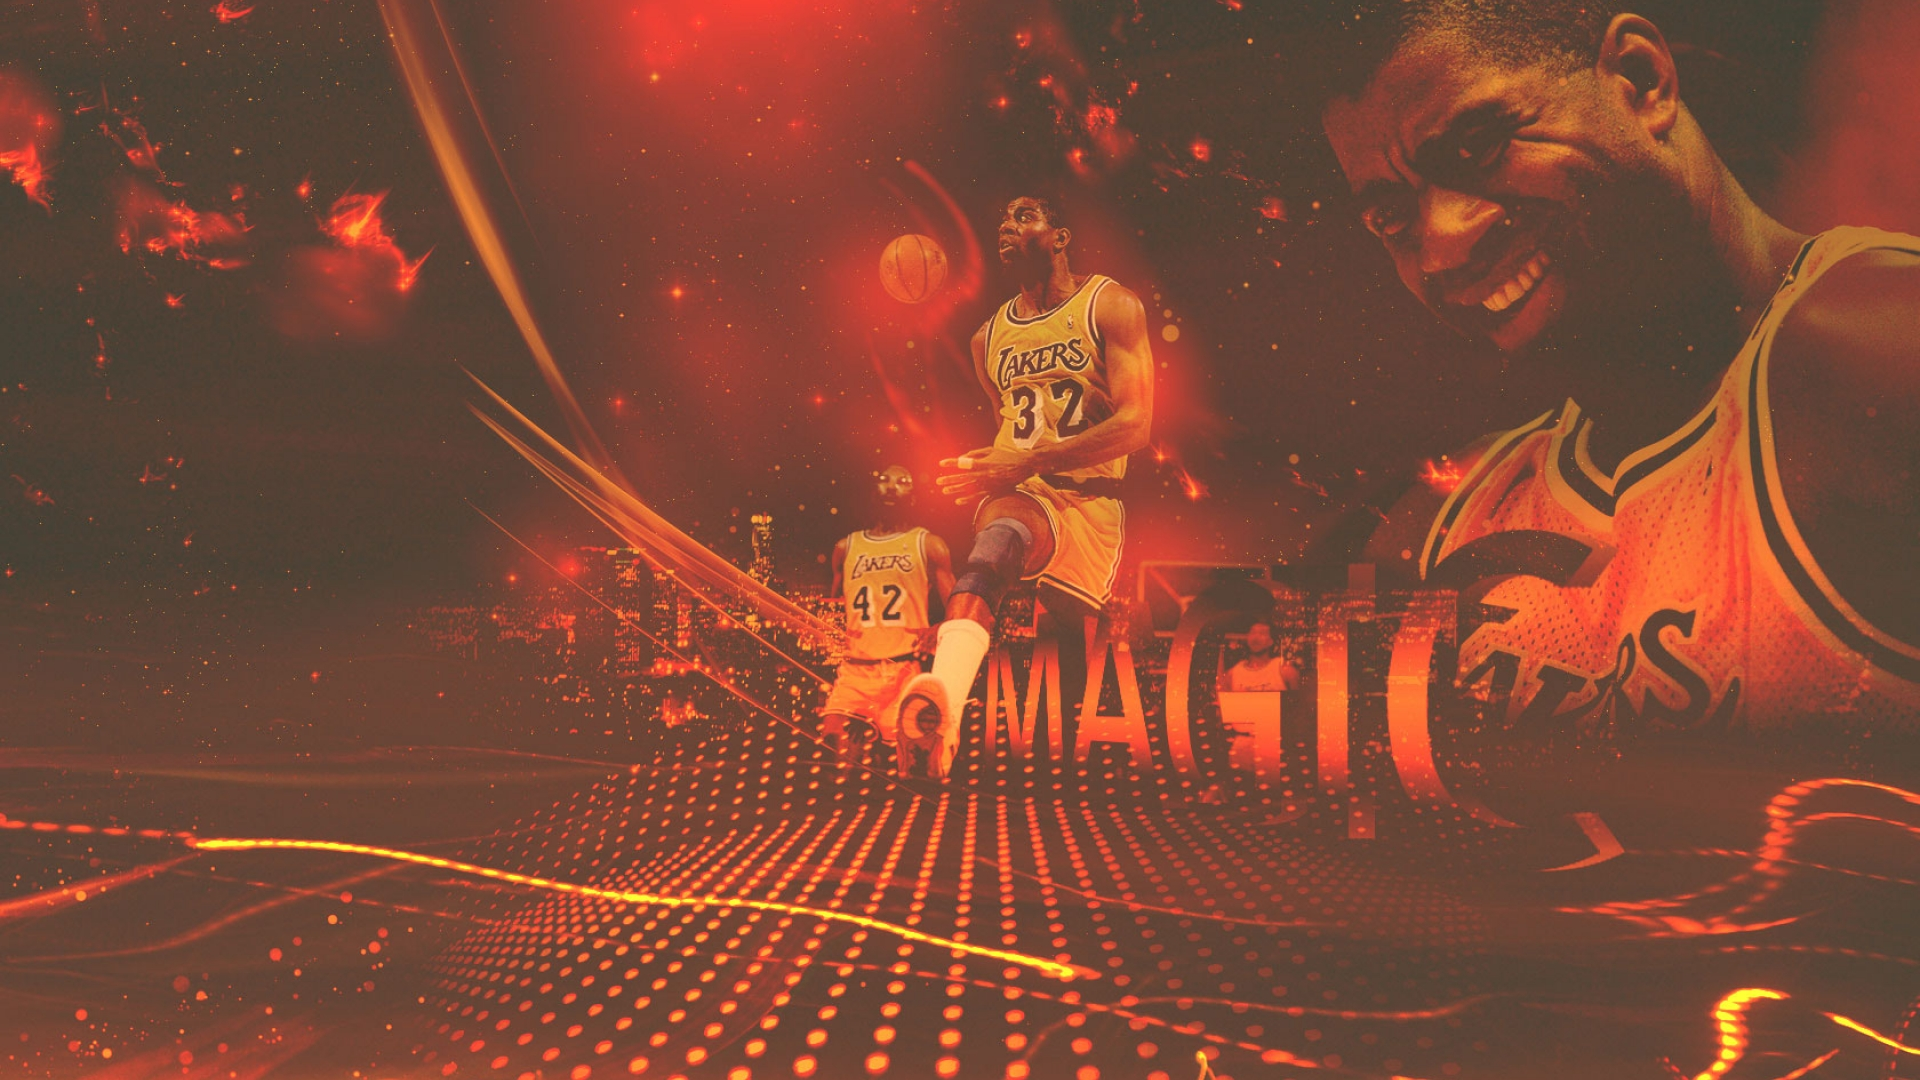 Magic Johnson Lakers wallpaper